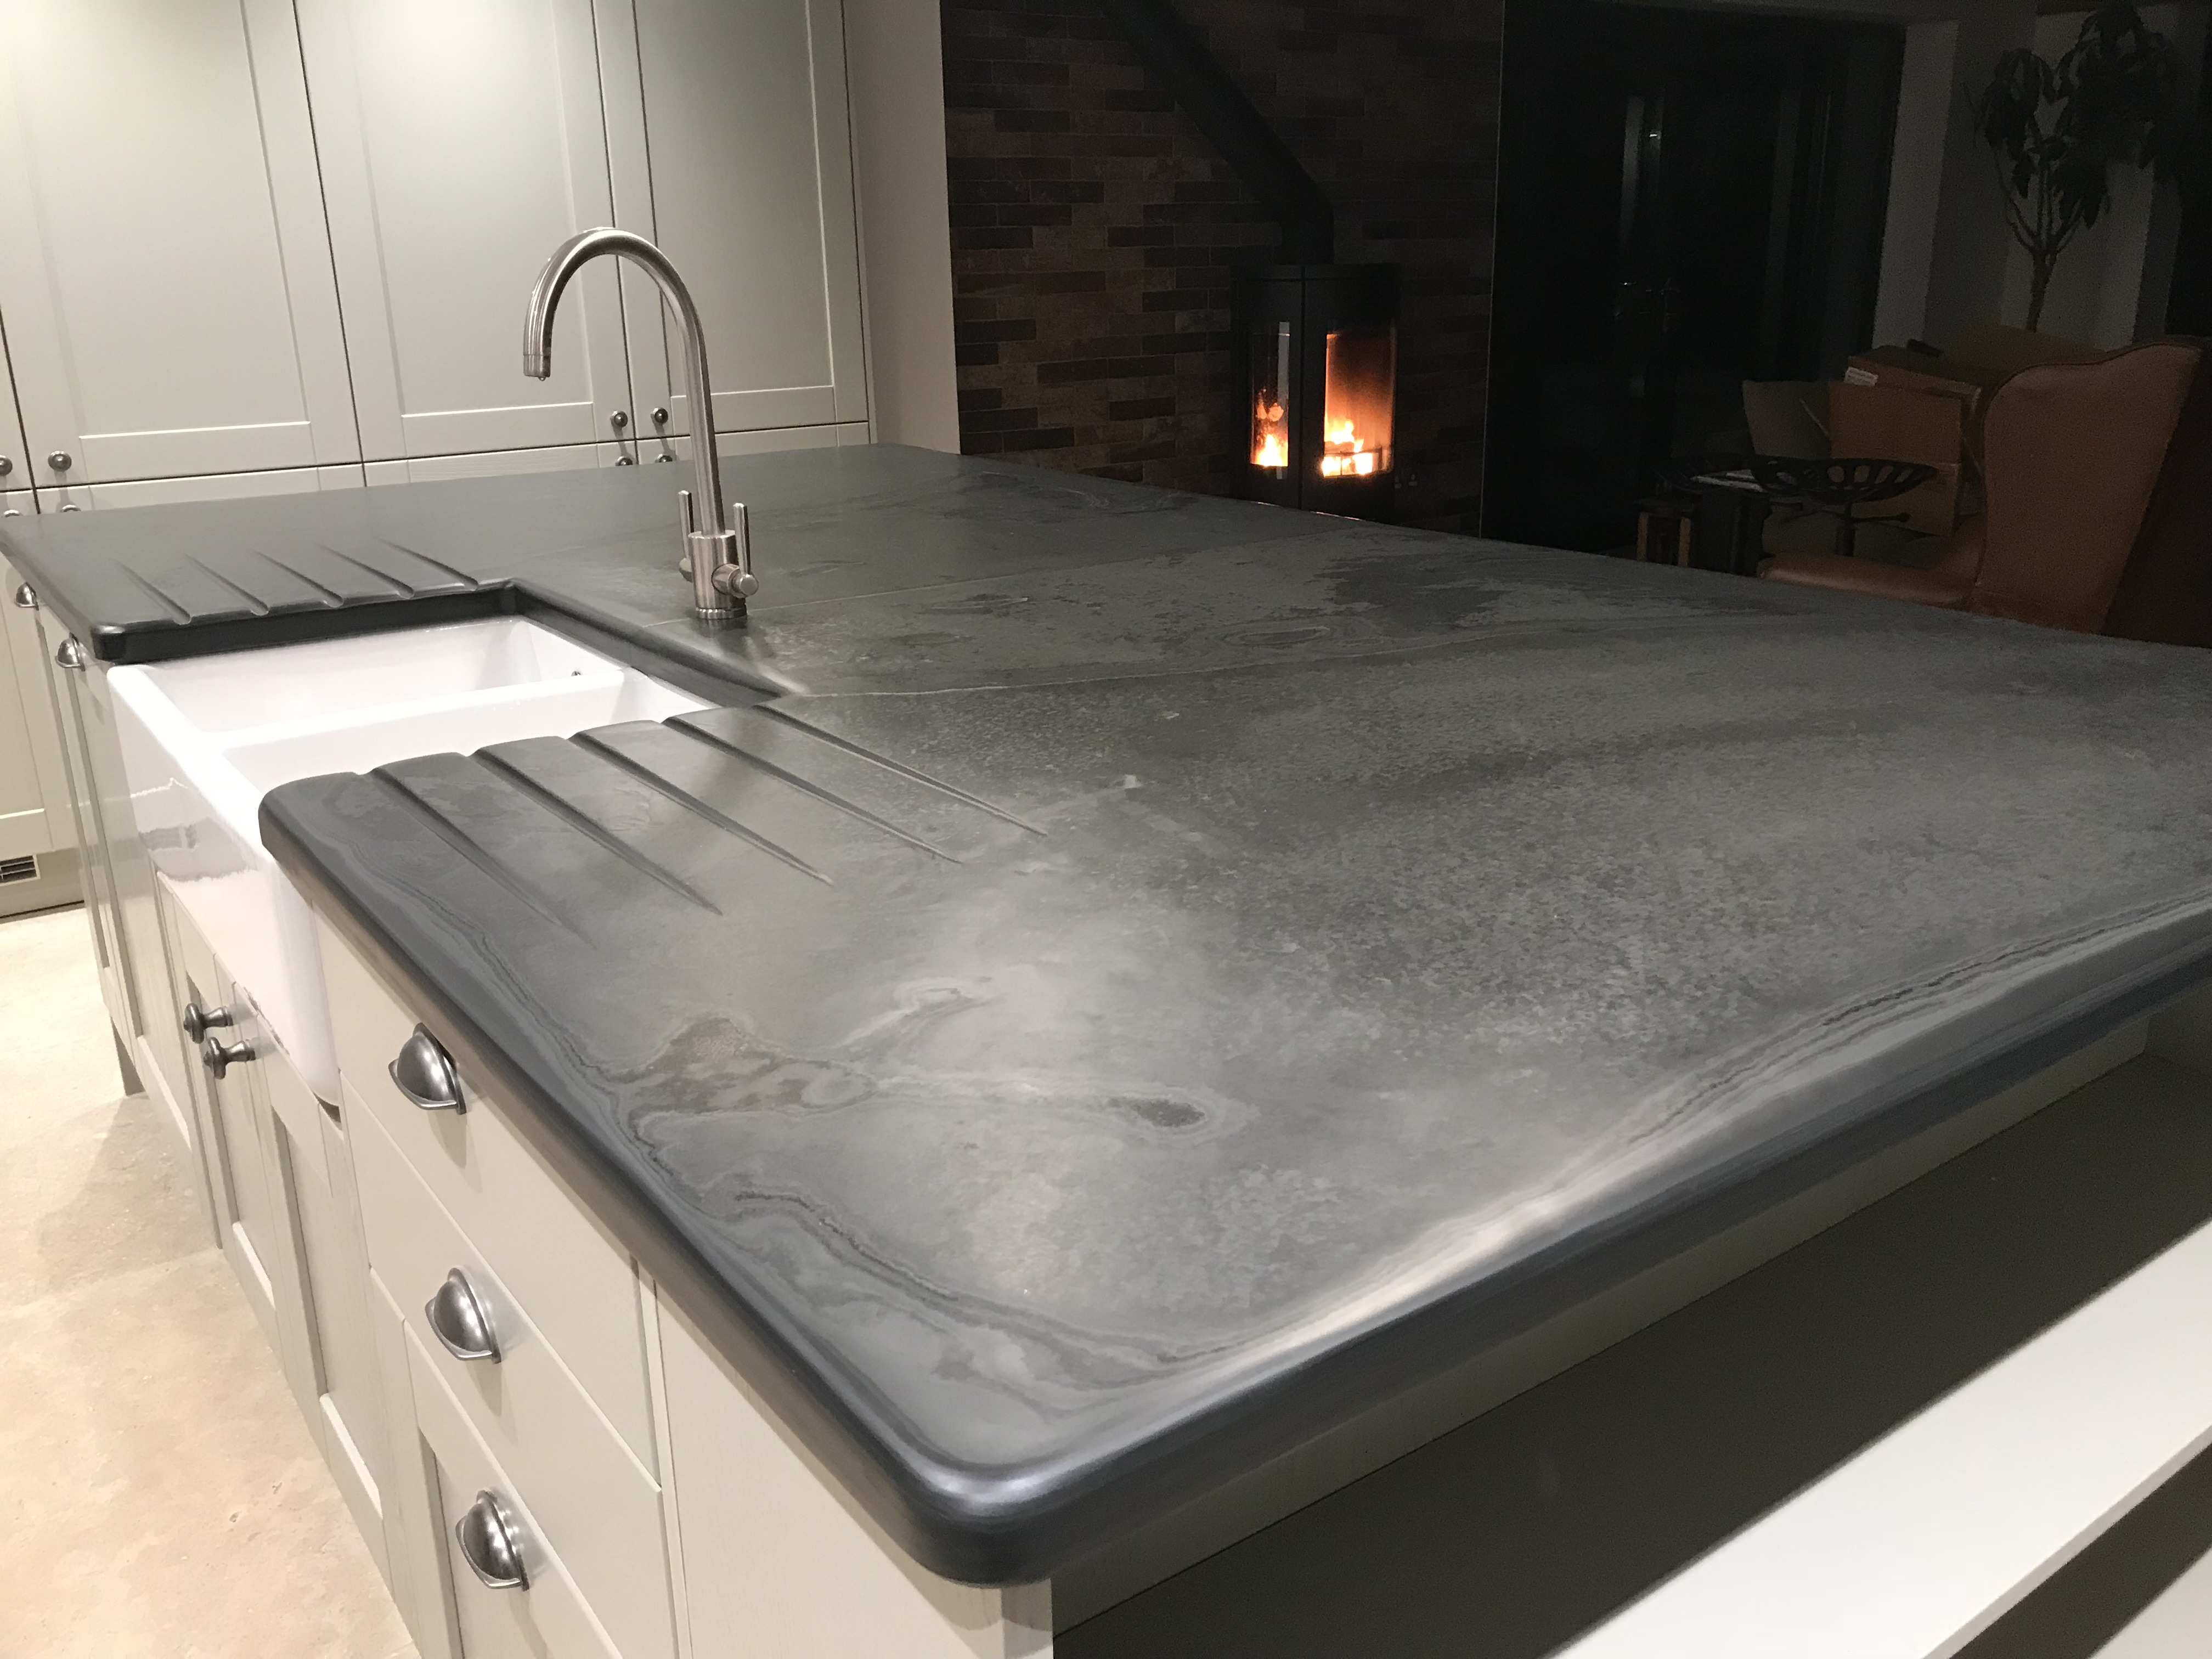 smooth edged and finished kitchen worktop with graining